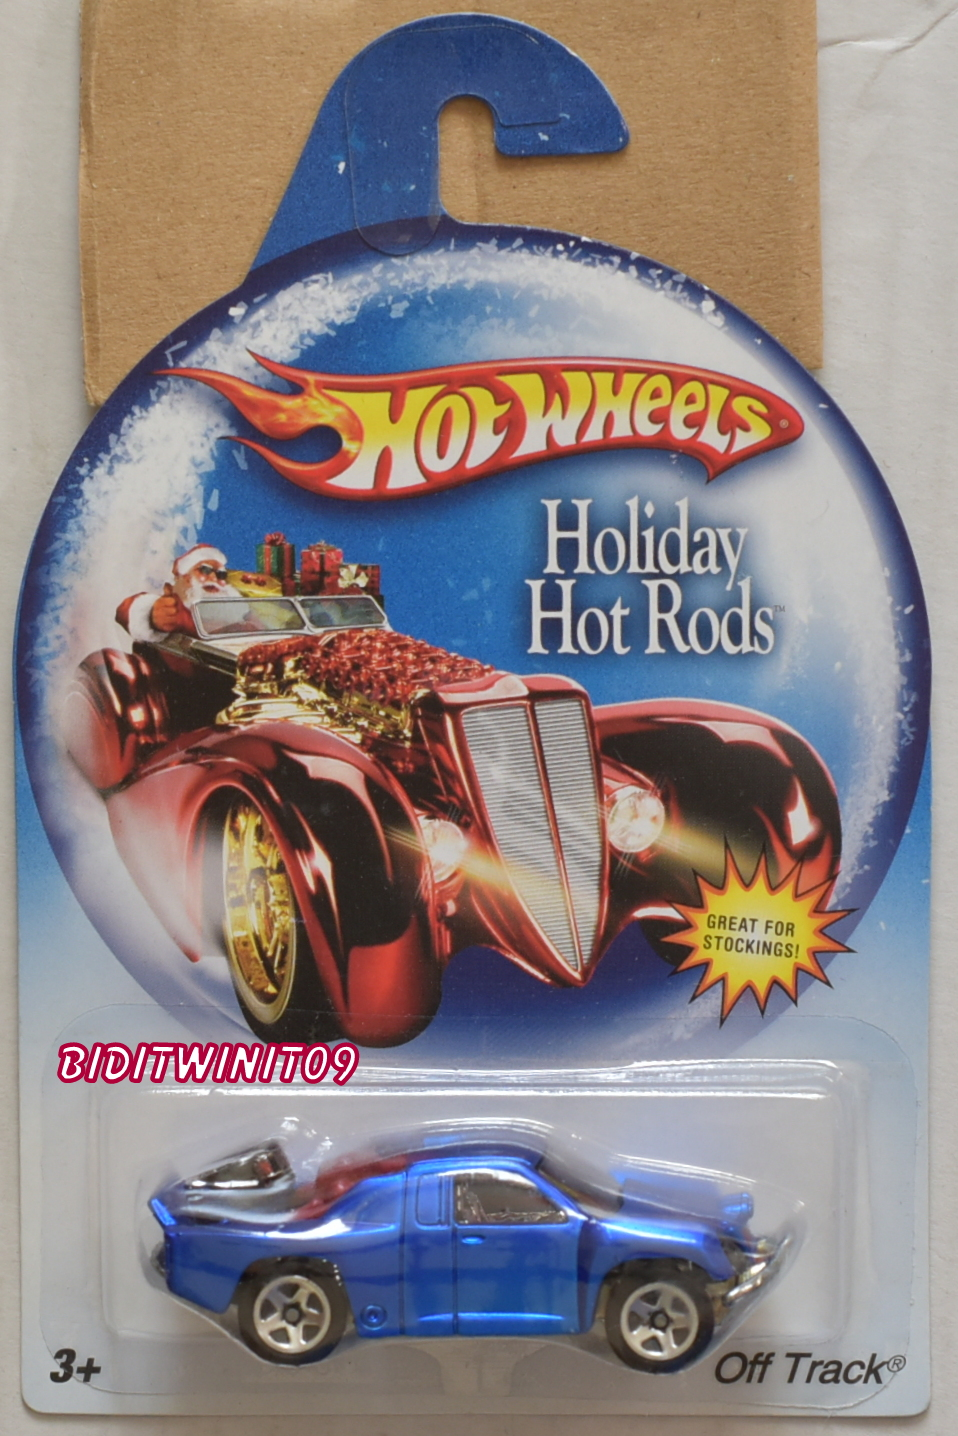 HOT WHEELS HOLIDAY HOT RODS OFF TRACK BLUE